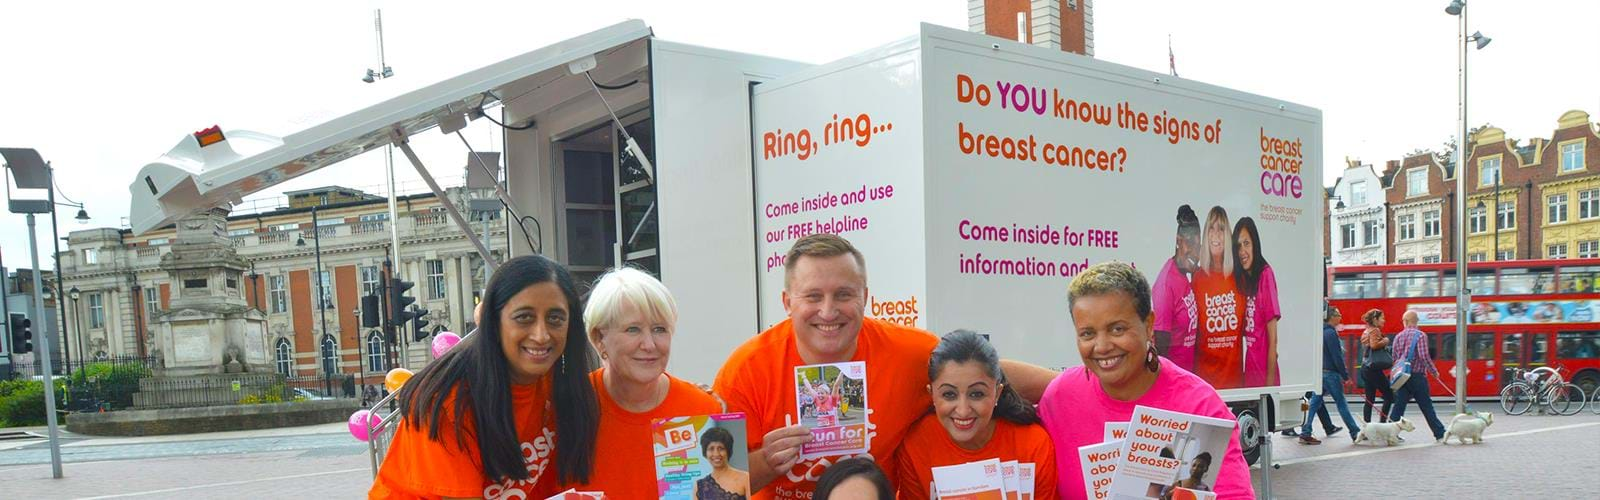 Breast Cancer Care Roadshow Truck B11